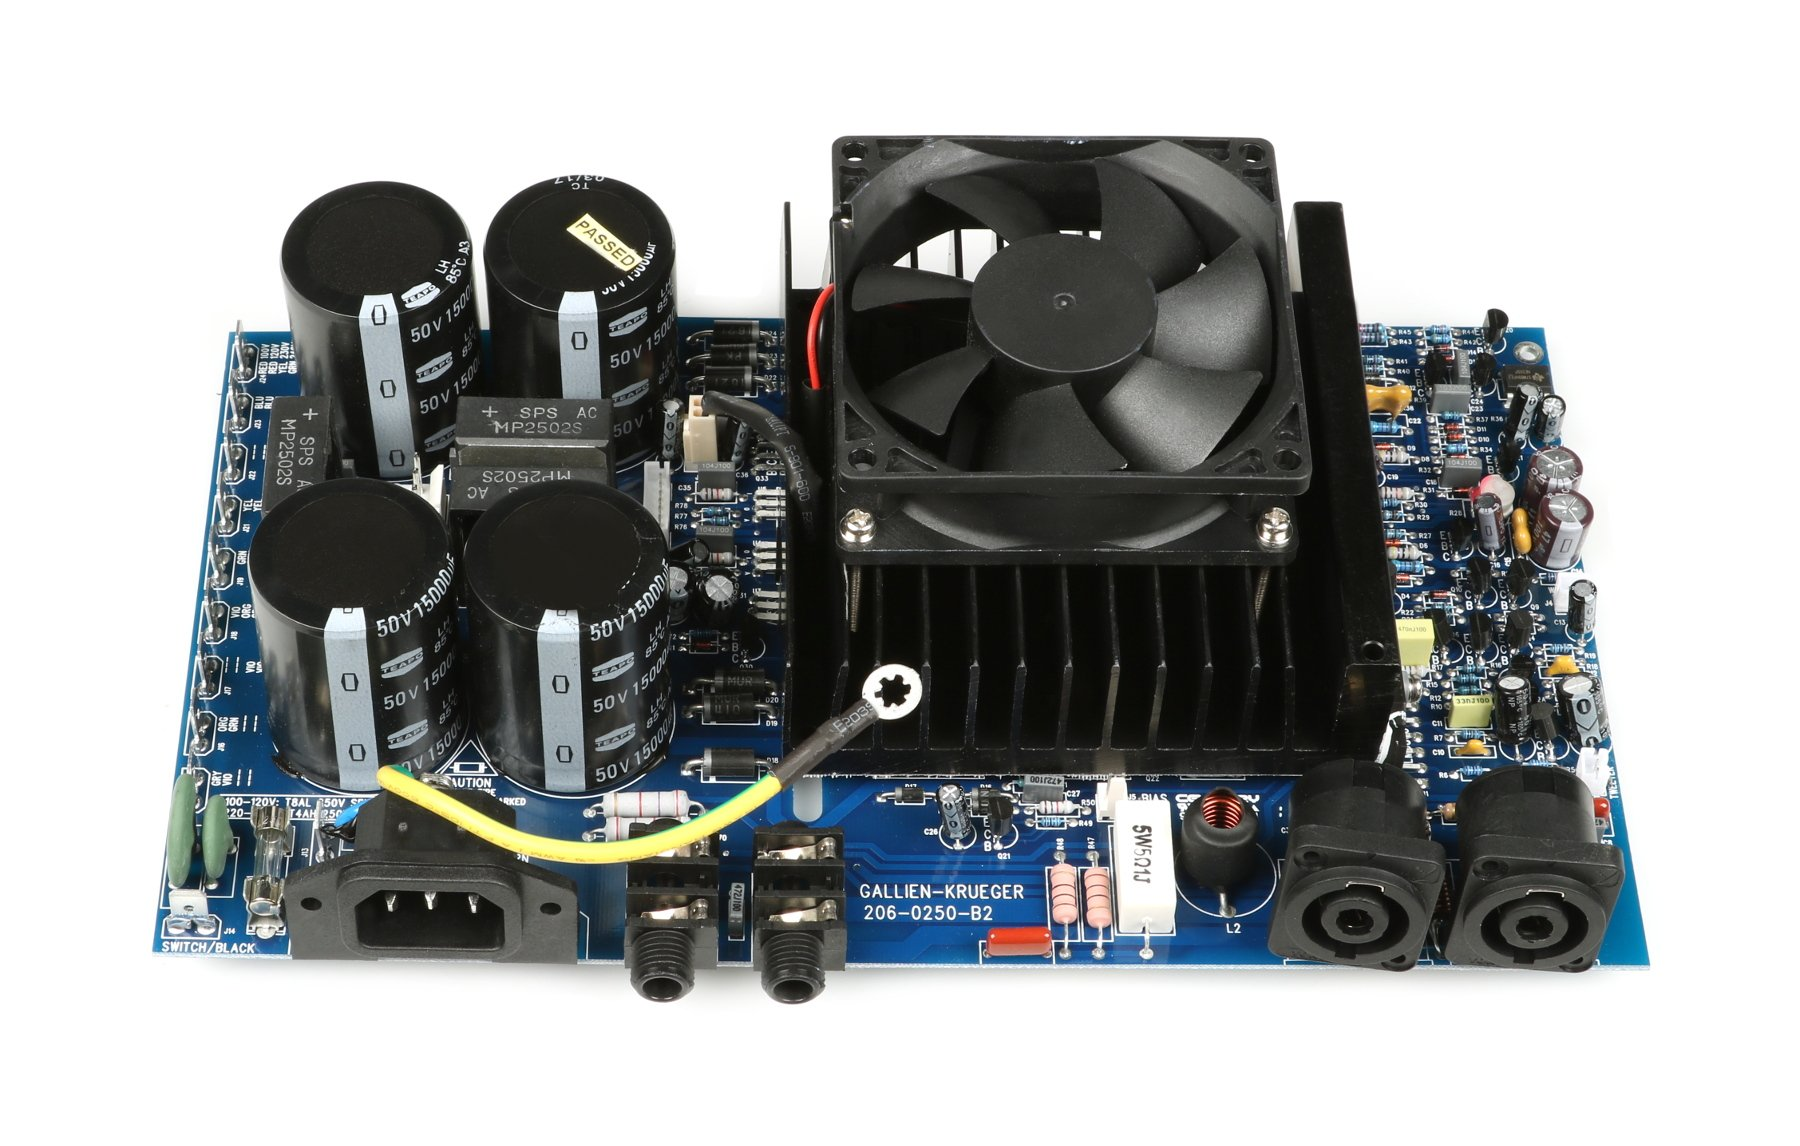 gallien krueger 207 0250 b 700rb ii replacement amp assembly full compass. Black Bedroom Furniture Sets. Home Design Ideas